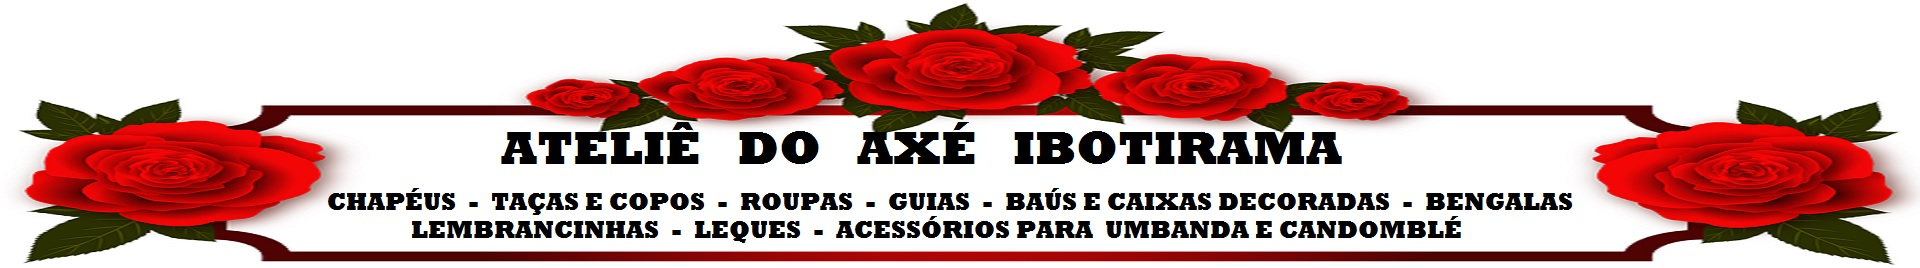 ATELIÊ DO AXÉ IBOTIRAMA